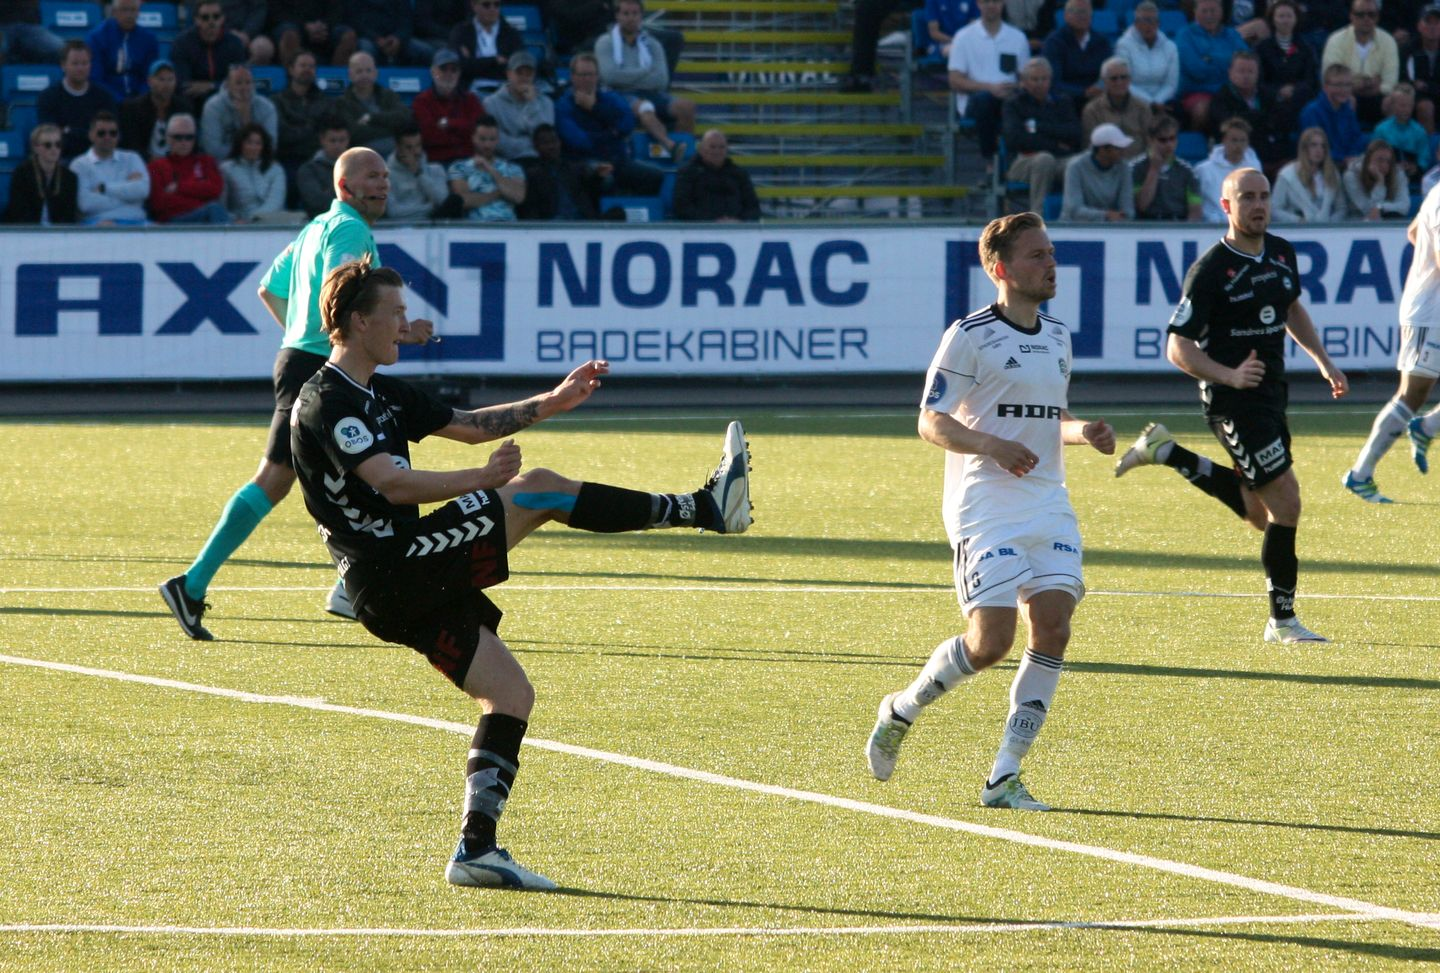 sandnes men Eliteserien is the premier professional men's handball league in norwayit was established in 1966, and it is currently contested by twelve teams sandefjord tif is the championship's most successful team with seven titles, followed by oppsal if with six.